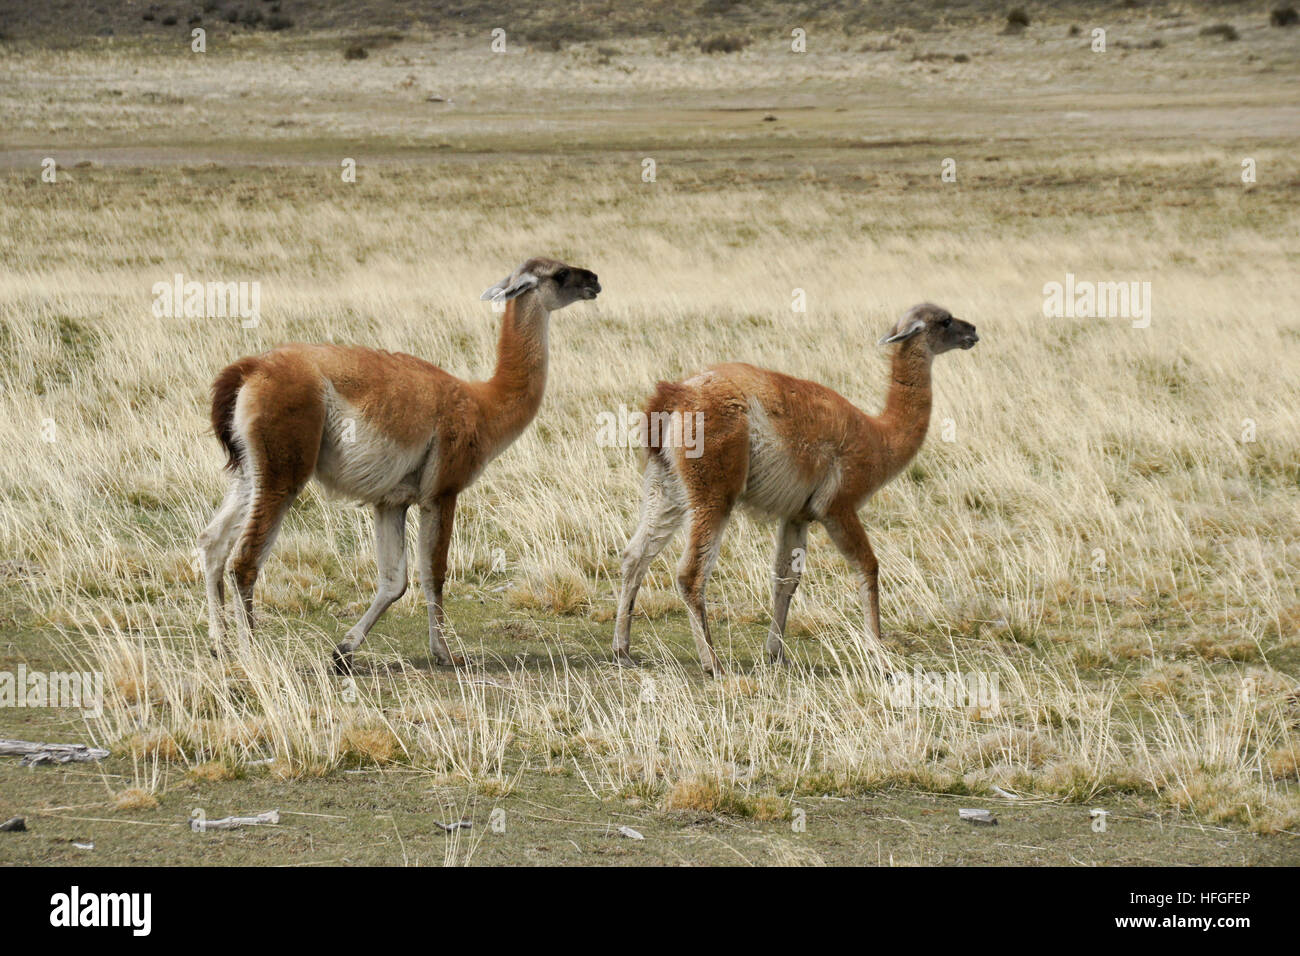 Male guanaco trying to mate with female, Torres del Paine NP, Patagonia, Chile - Stock Image